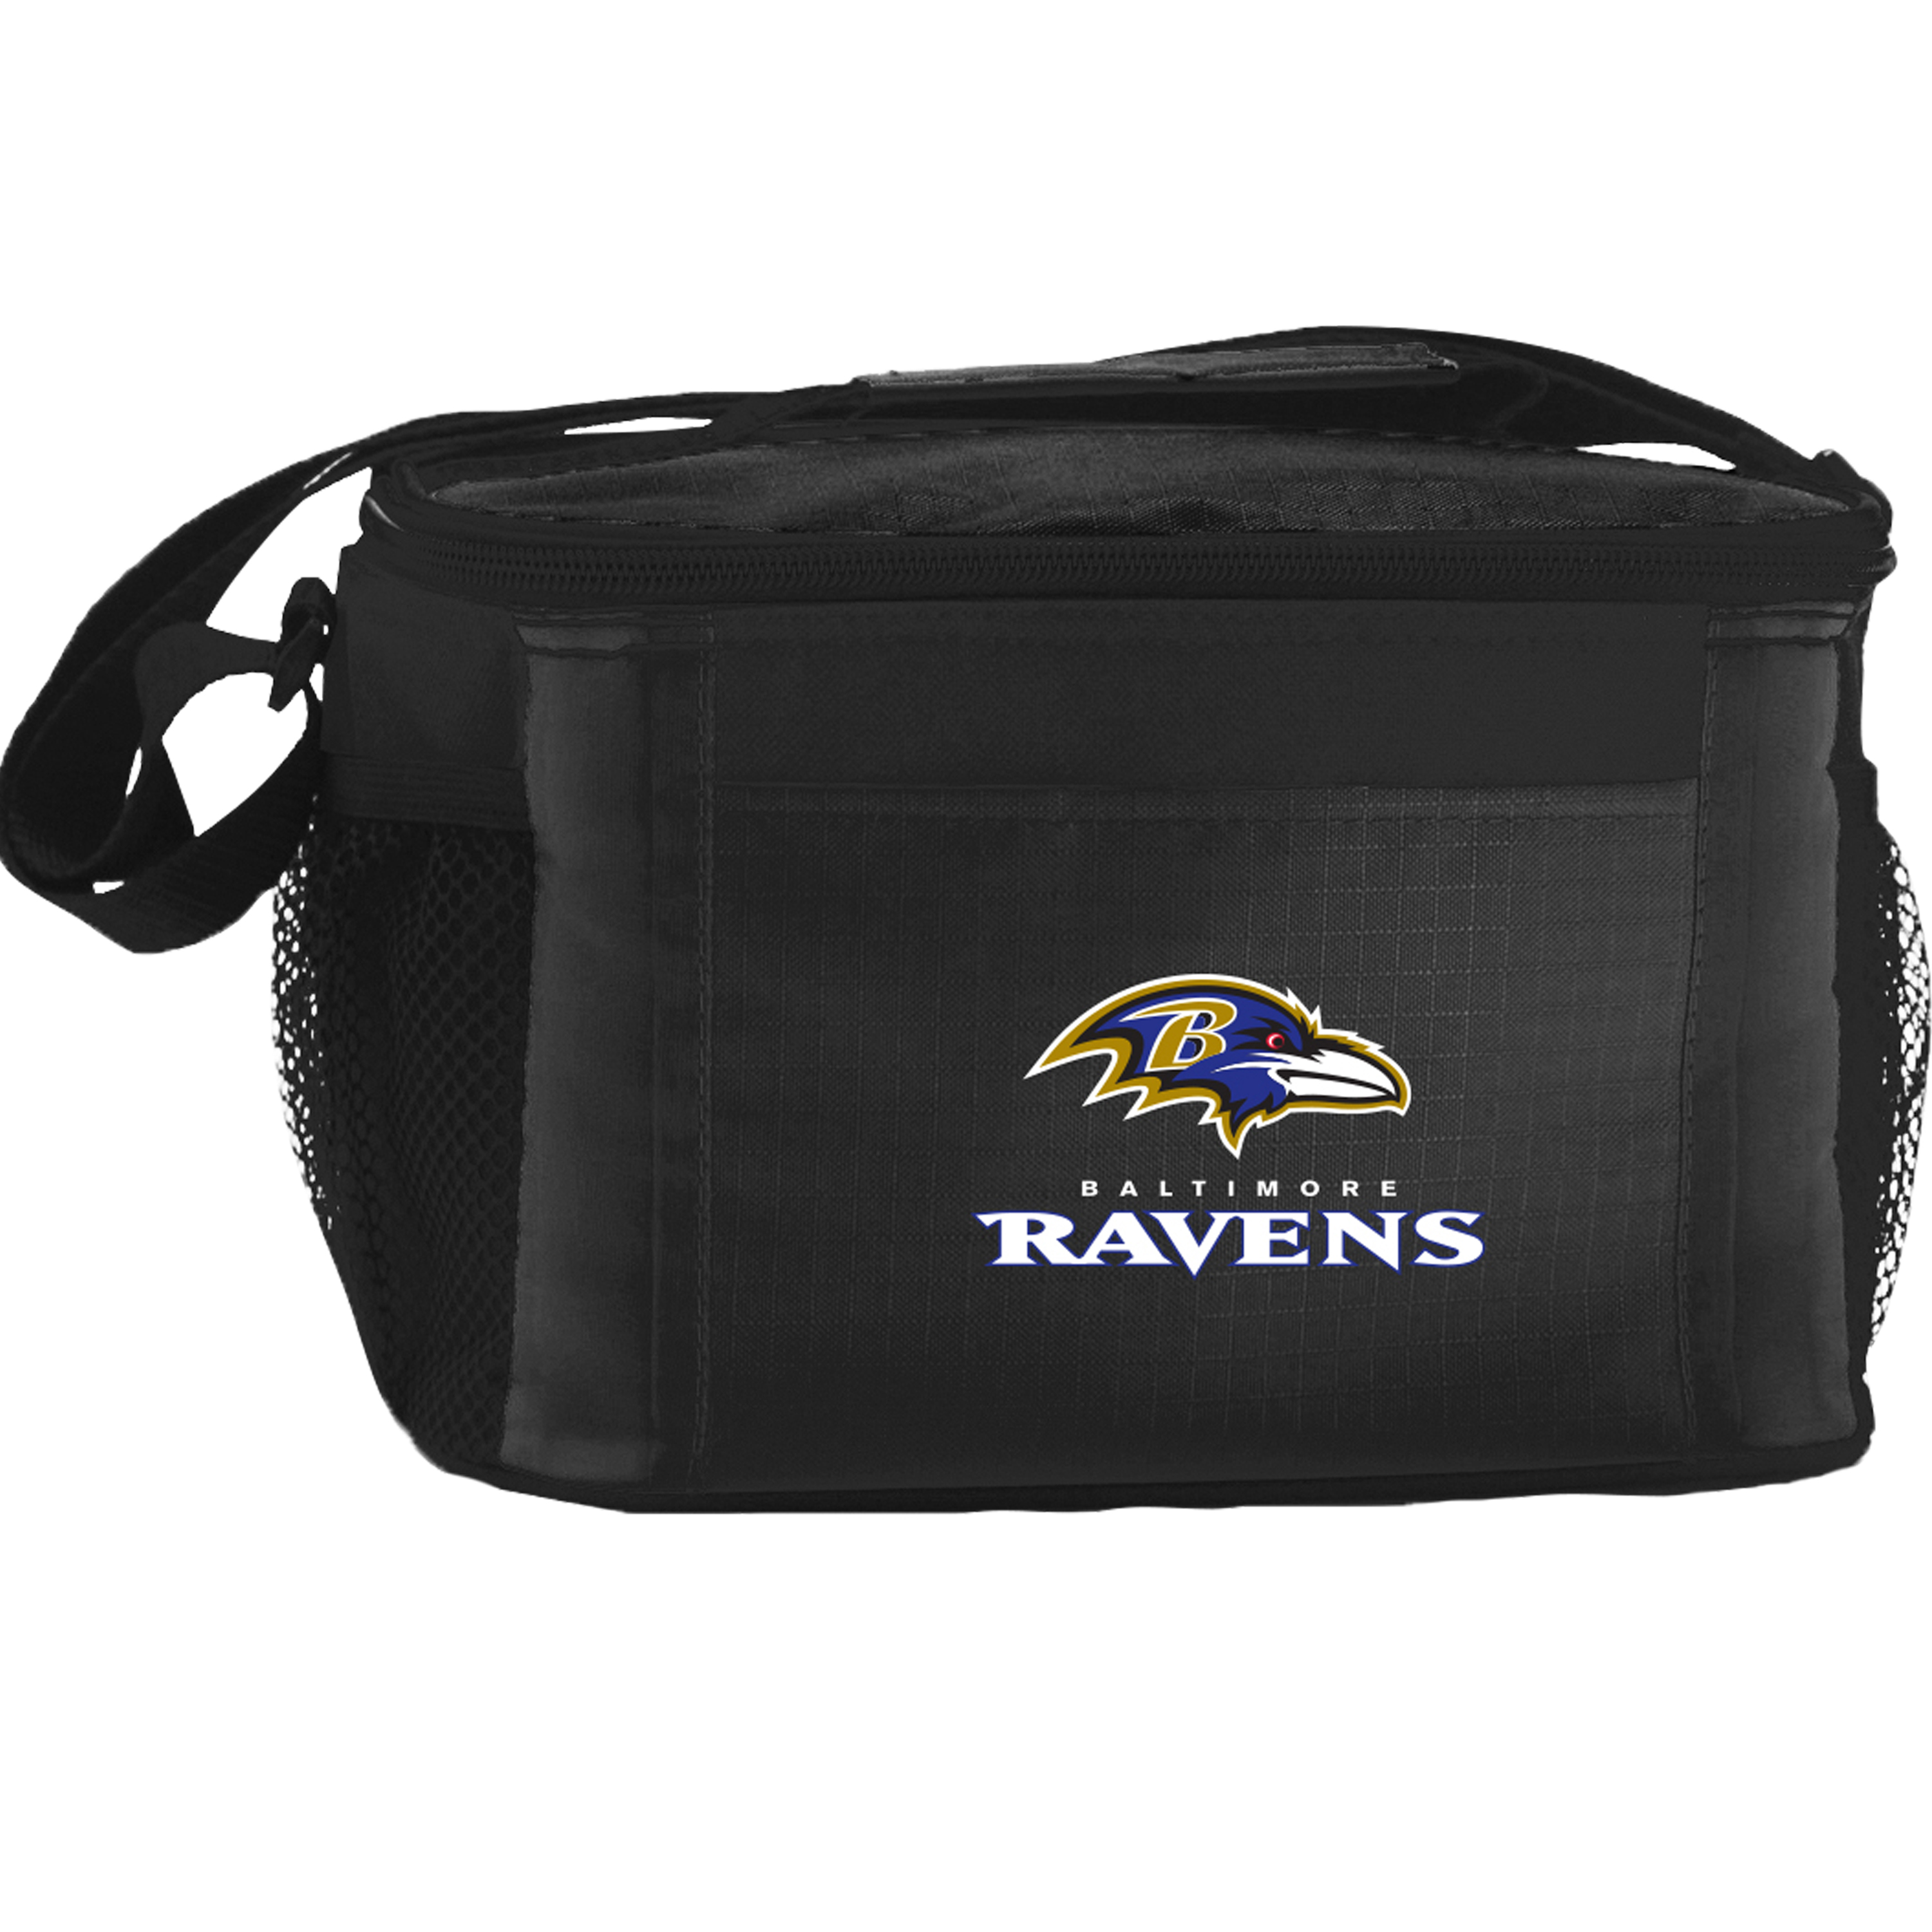 Baltimore Ravens - 6pk Cooler Bag